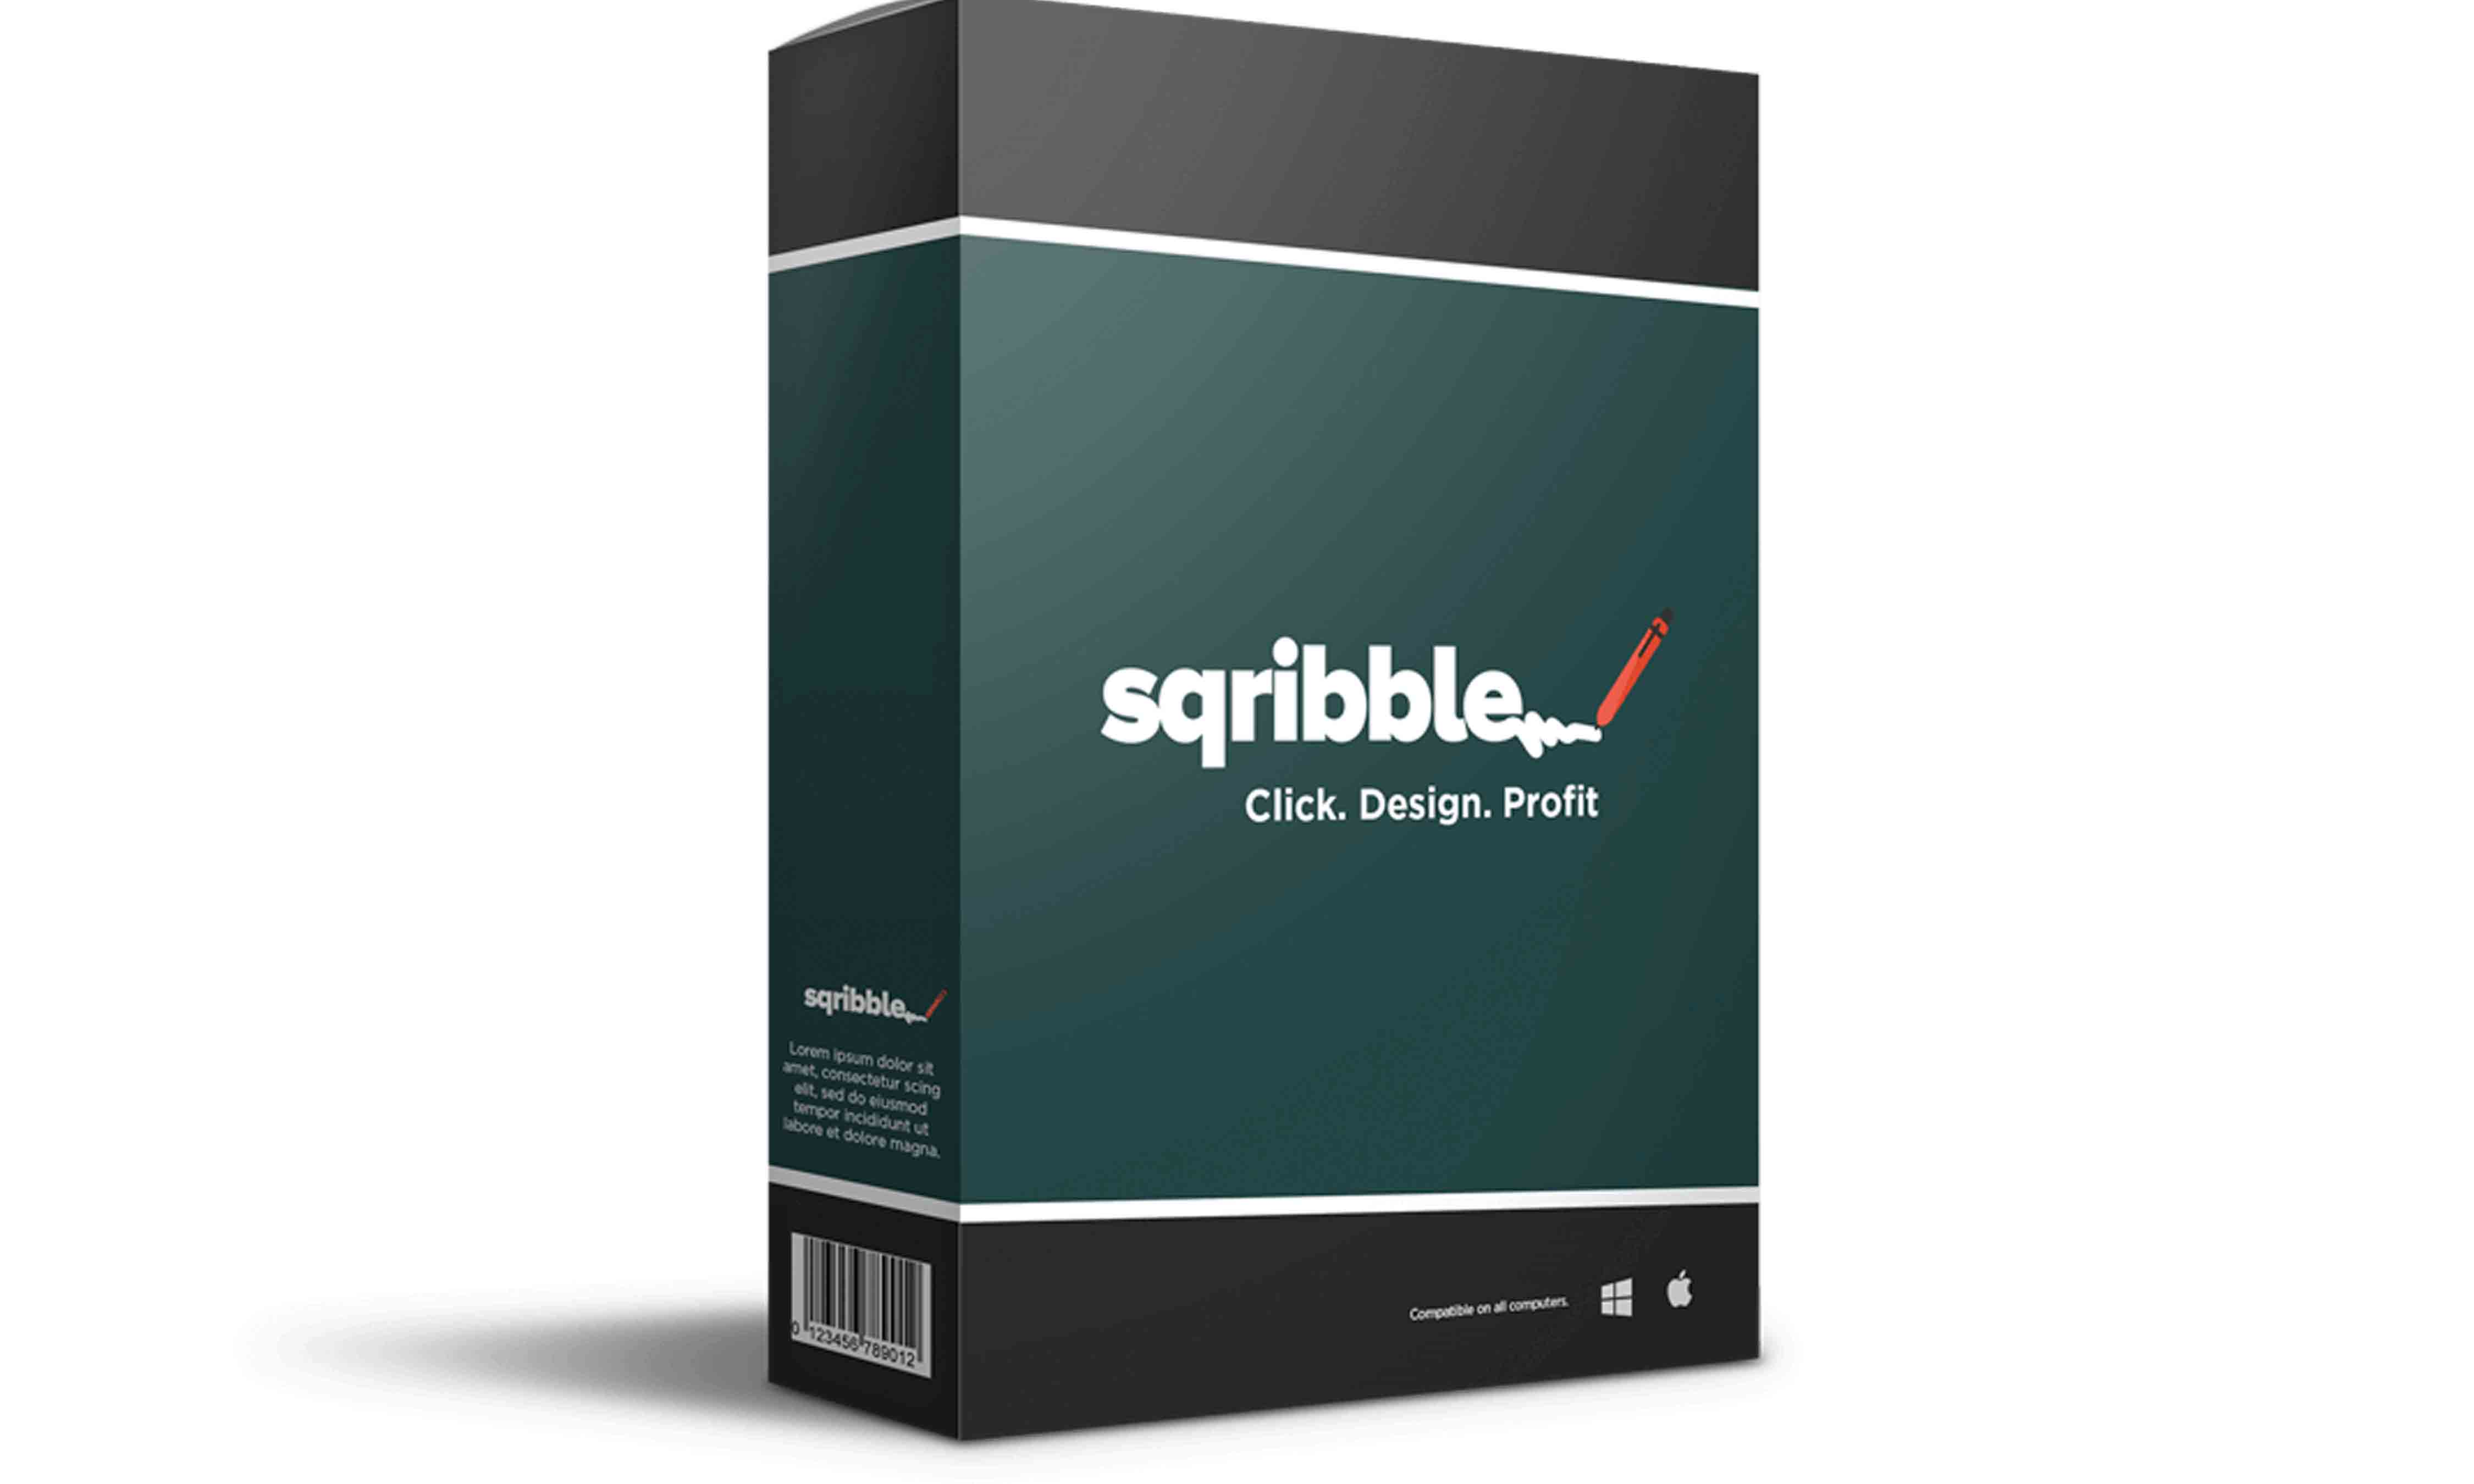 Sqribble Reviews